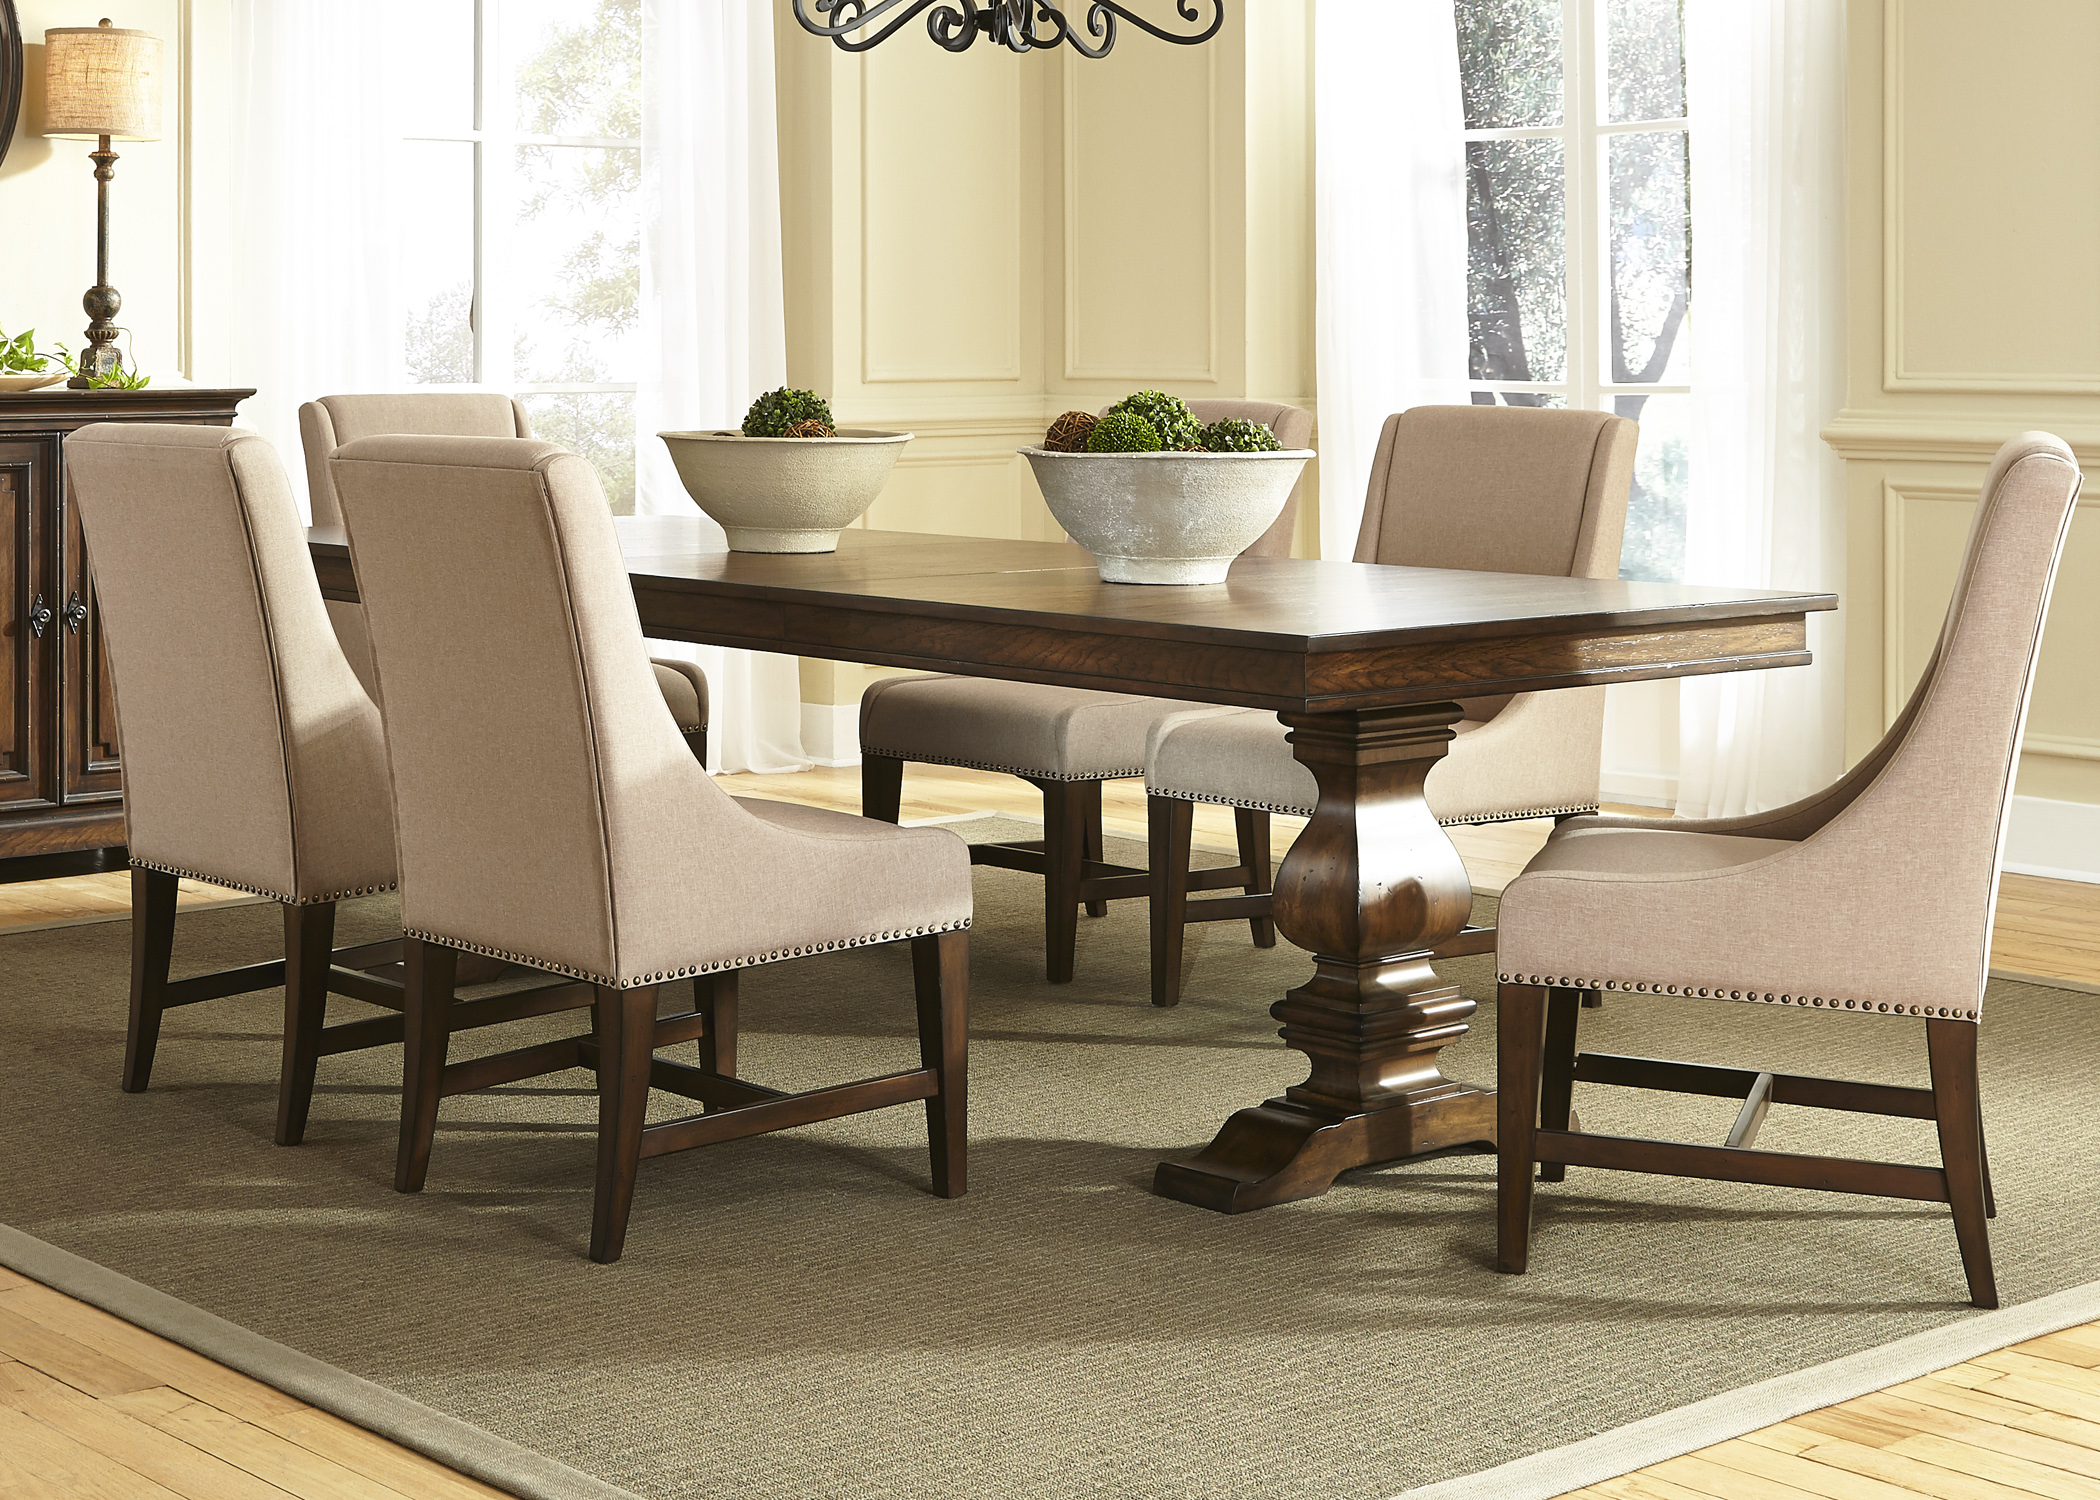 Liberty Furniture Armand 7 Piece Trestle Table Set - Item Number: 242-DR-7TRS